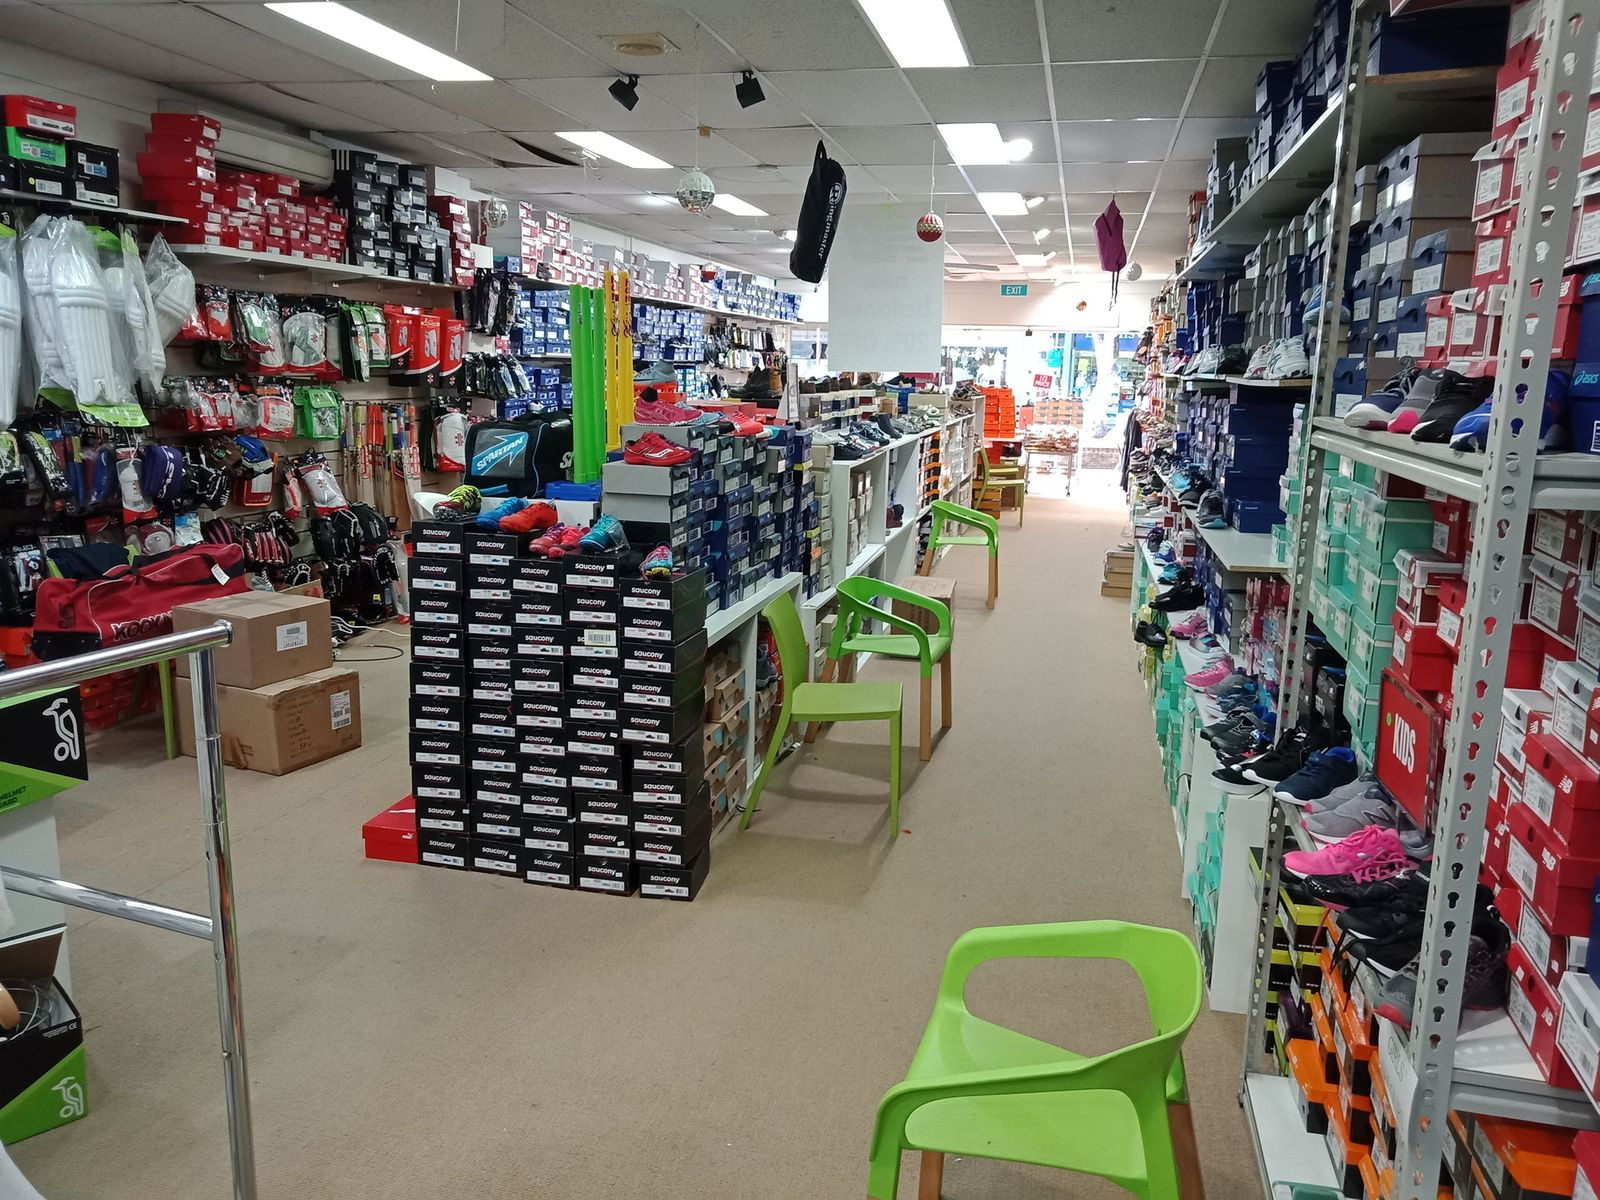 29 The Centre, Forestville, NSW 2087